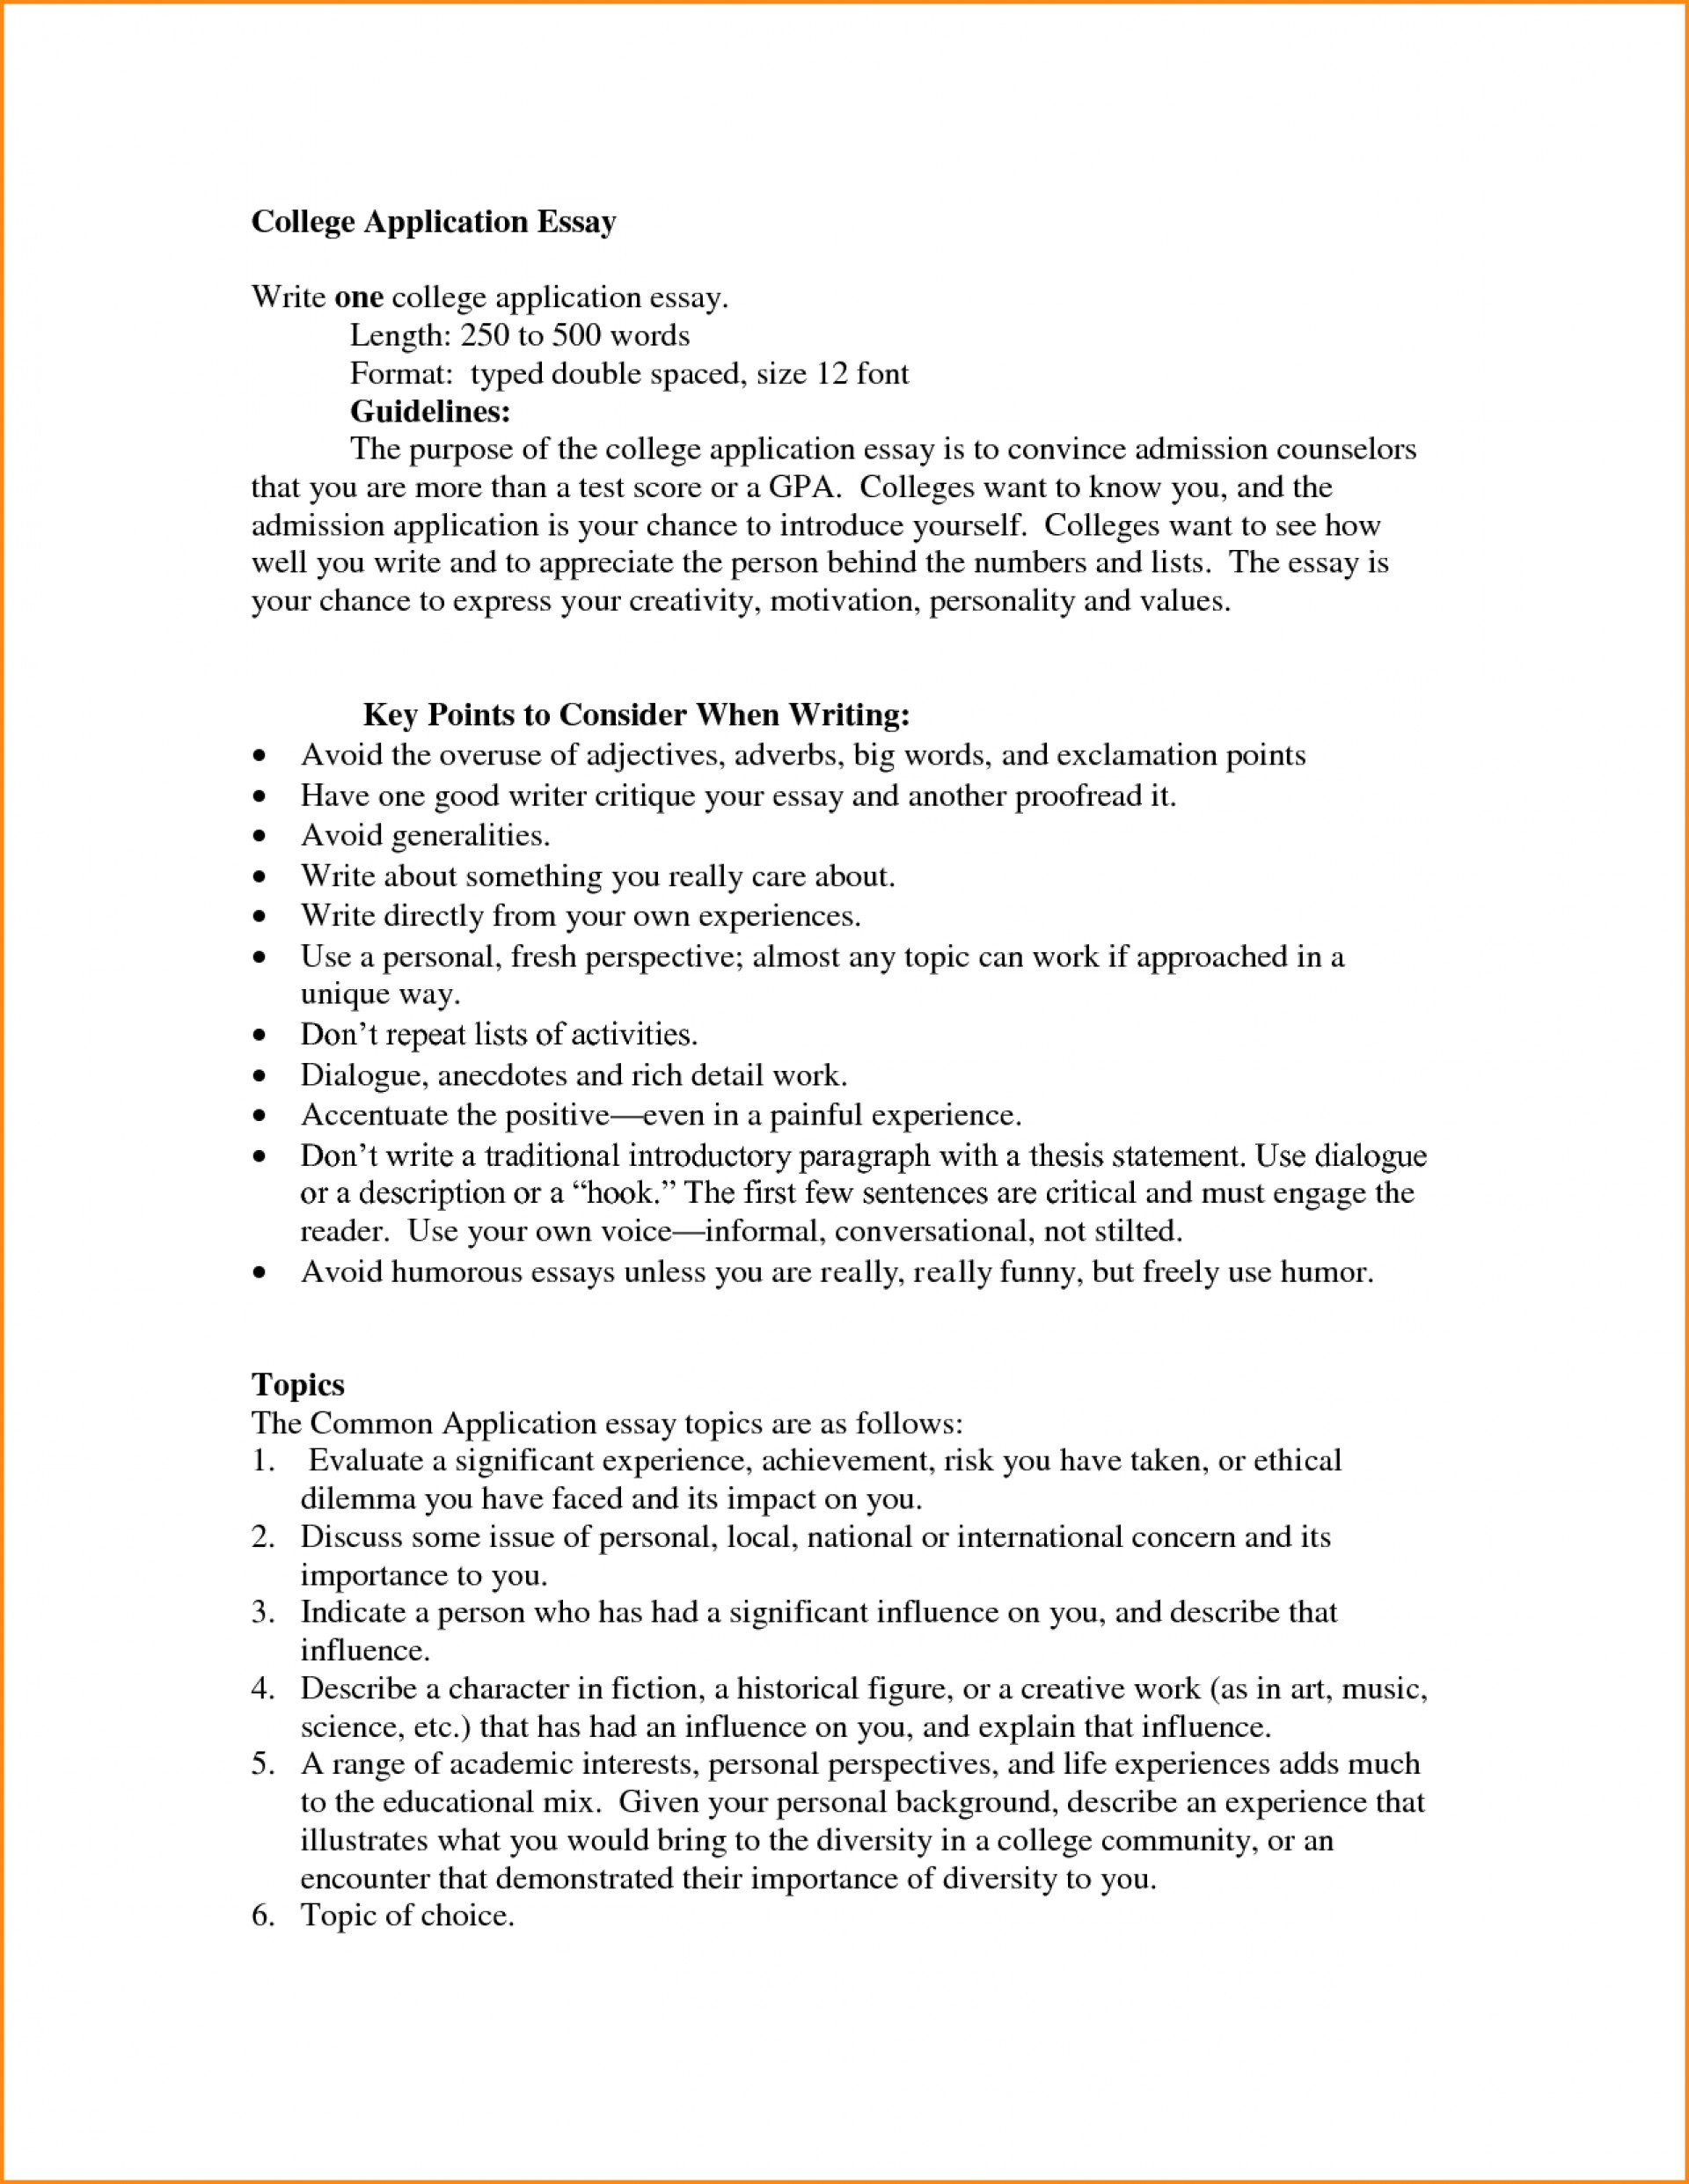 007 Essay Example Standard College Format Resume Cv Cover Letter L How To Awesome A Application Set Up My Your 1920